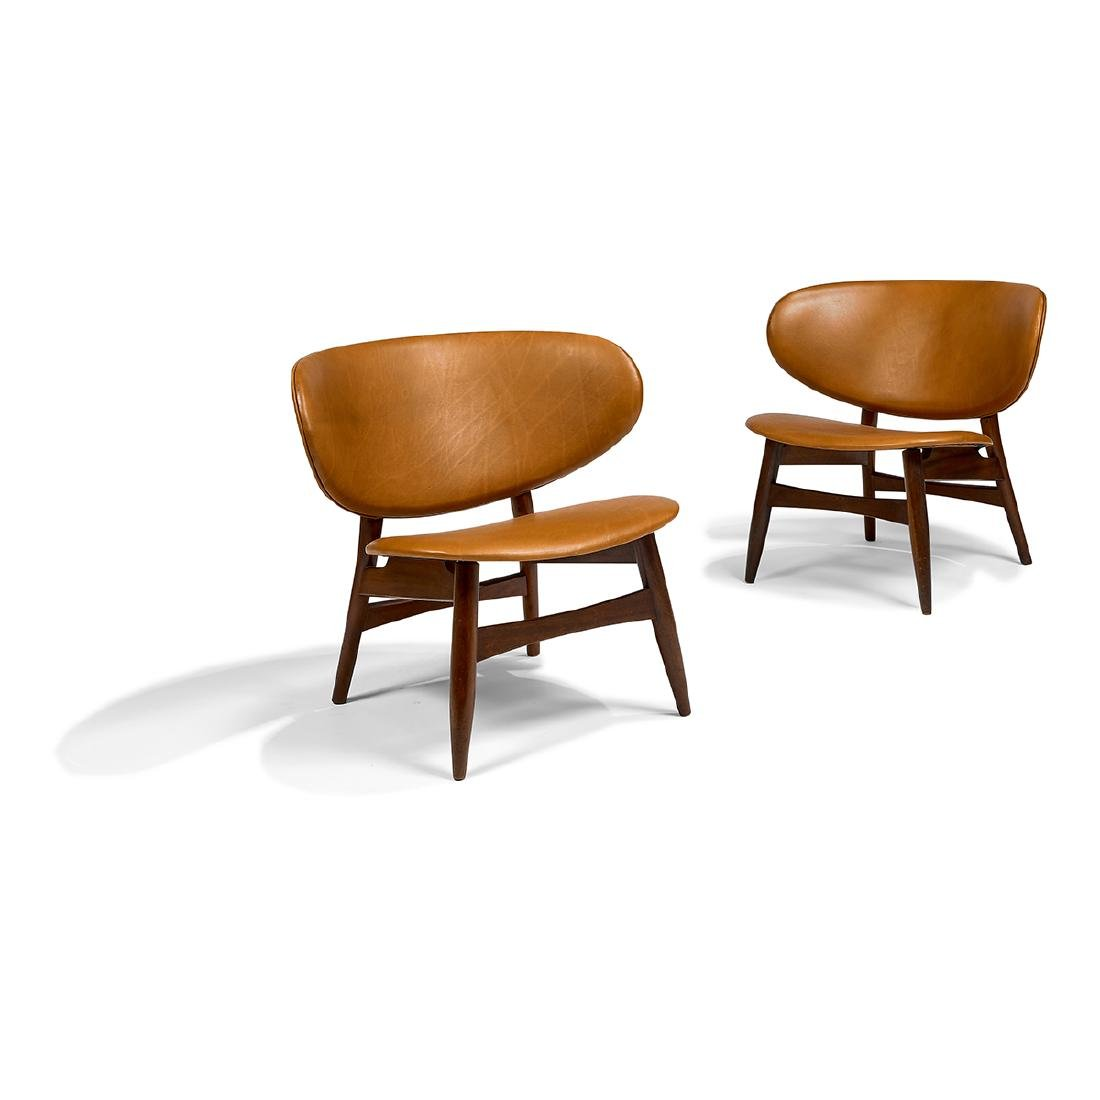 In the Style of Hans J. Wegner, Shell chairs, pair